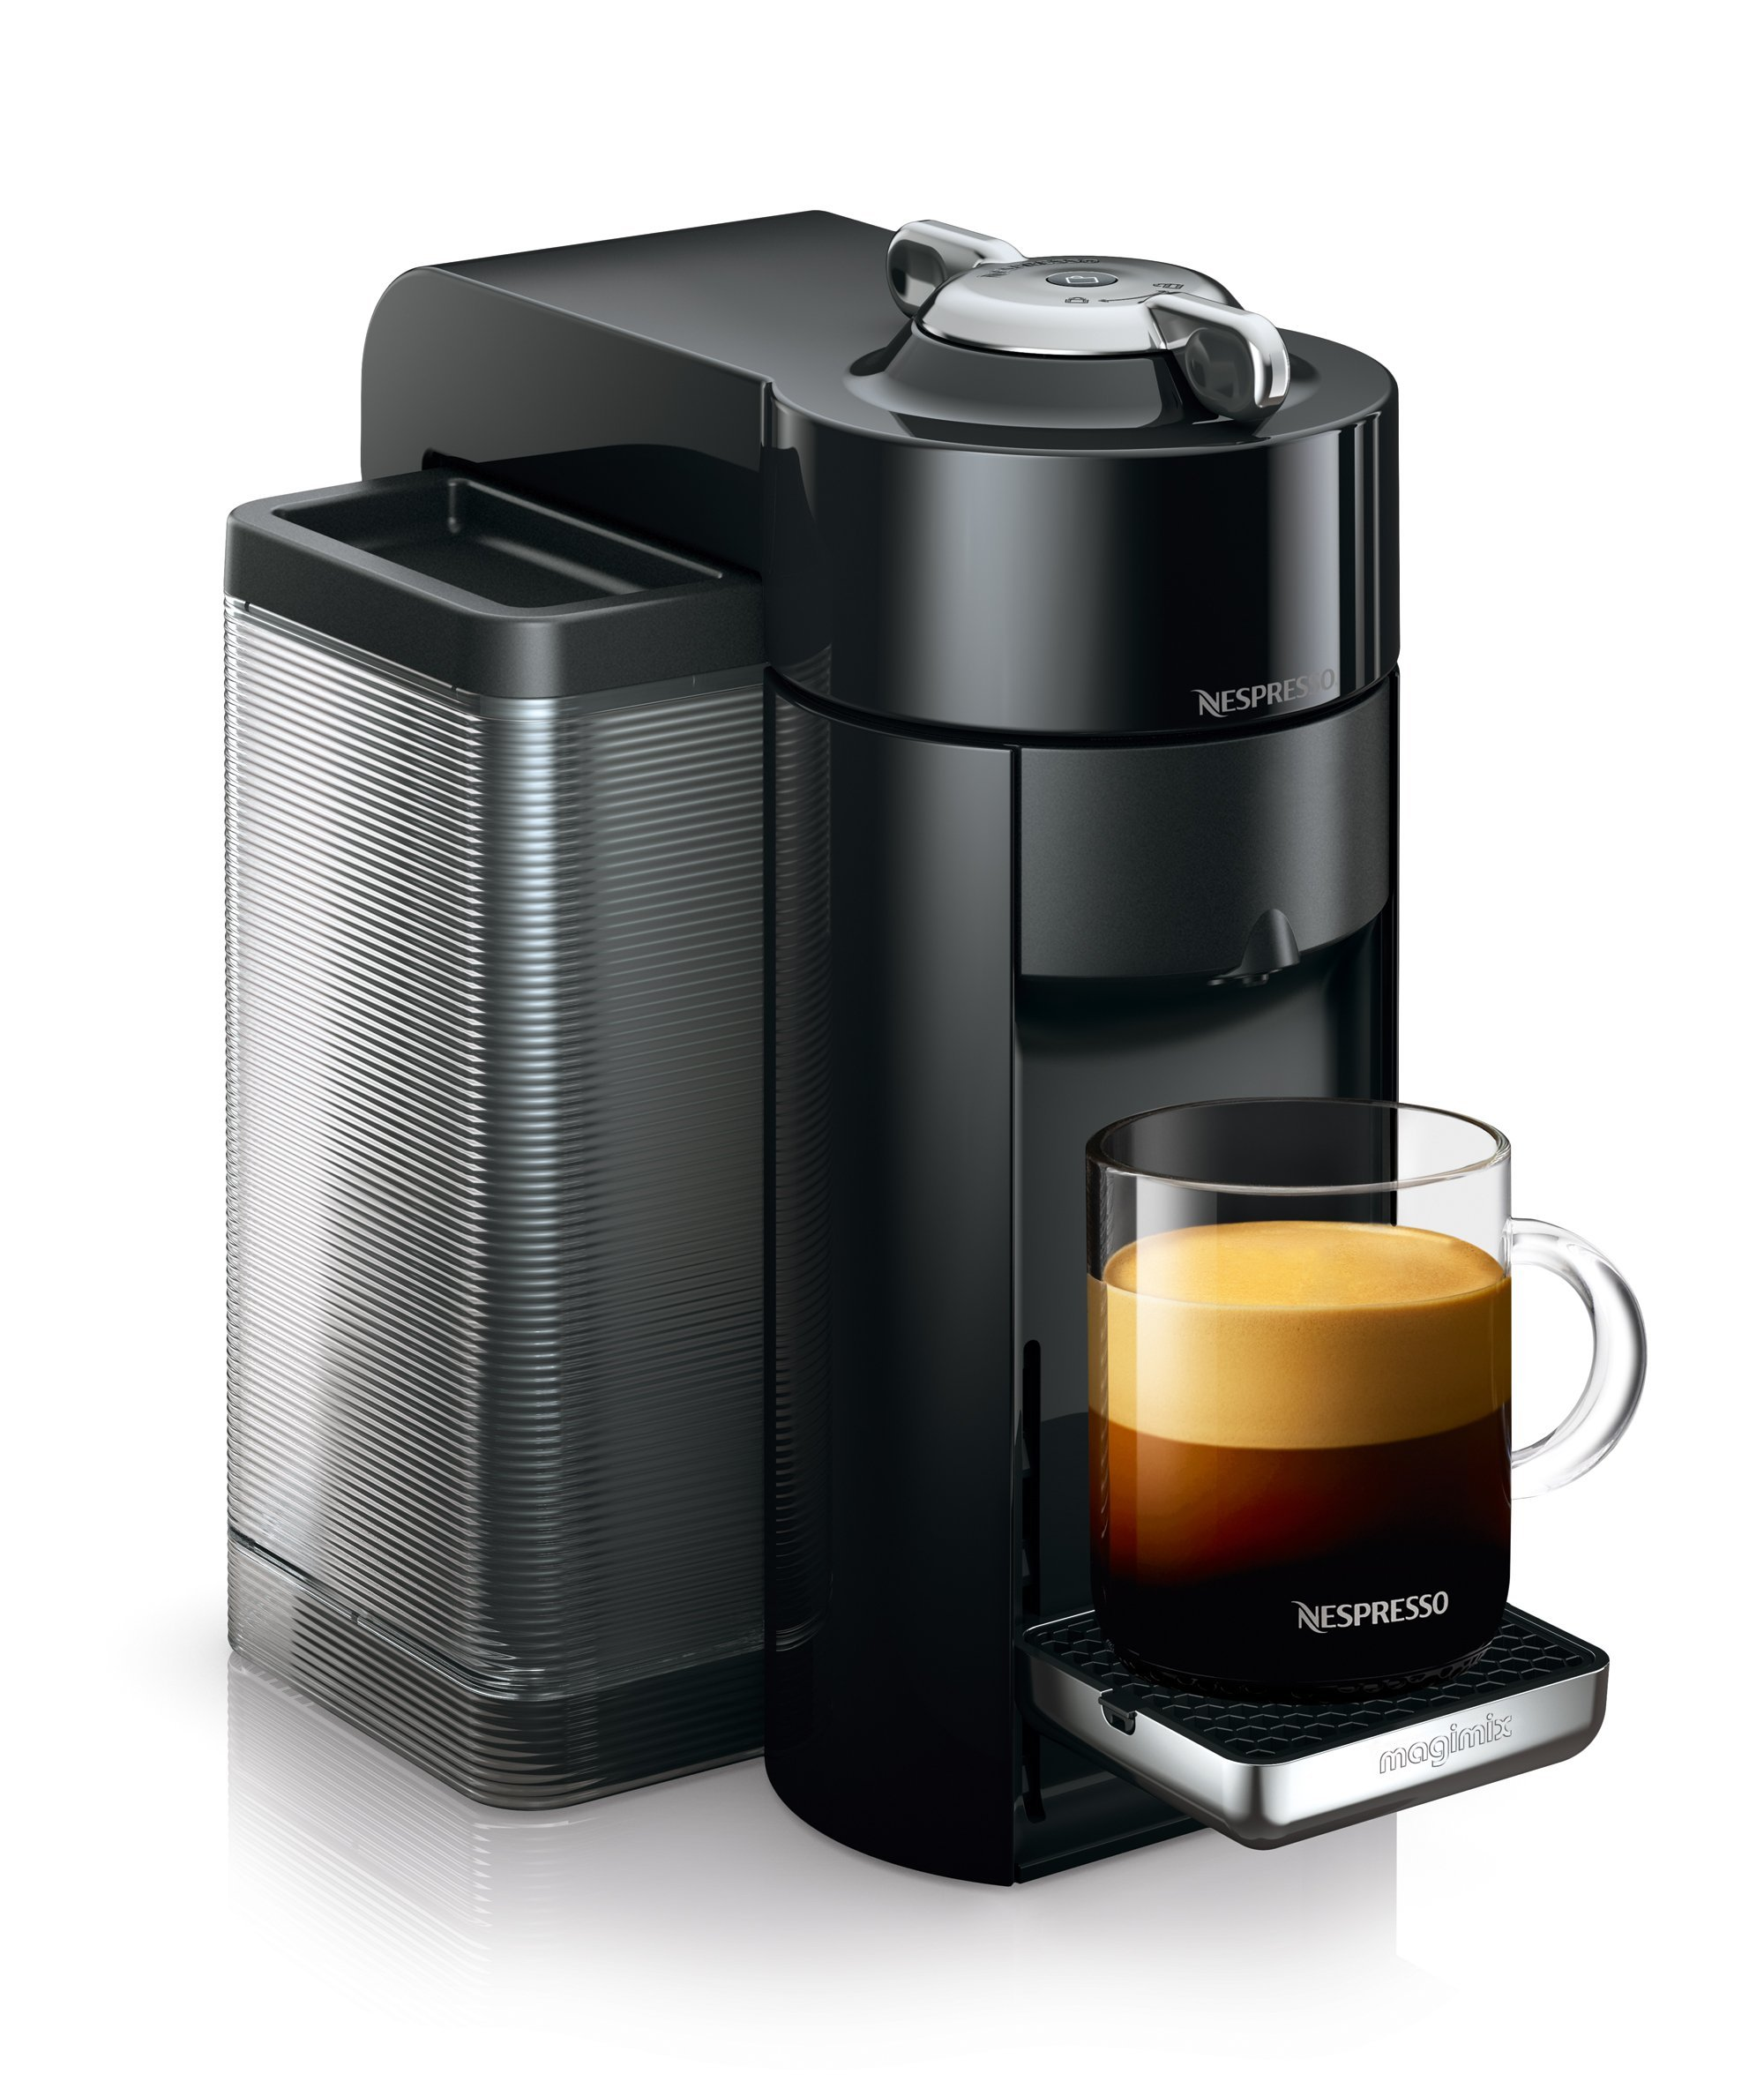 Nespresso Vertuo Coffee Machine, Black finish by Magimix 11390 Claim 100 coffee capsules plus 2 months' (1st & 6th) coffee subscription for free